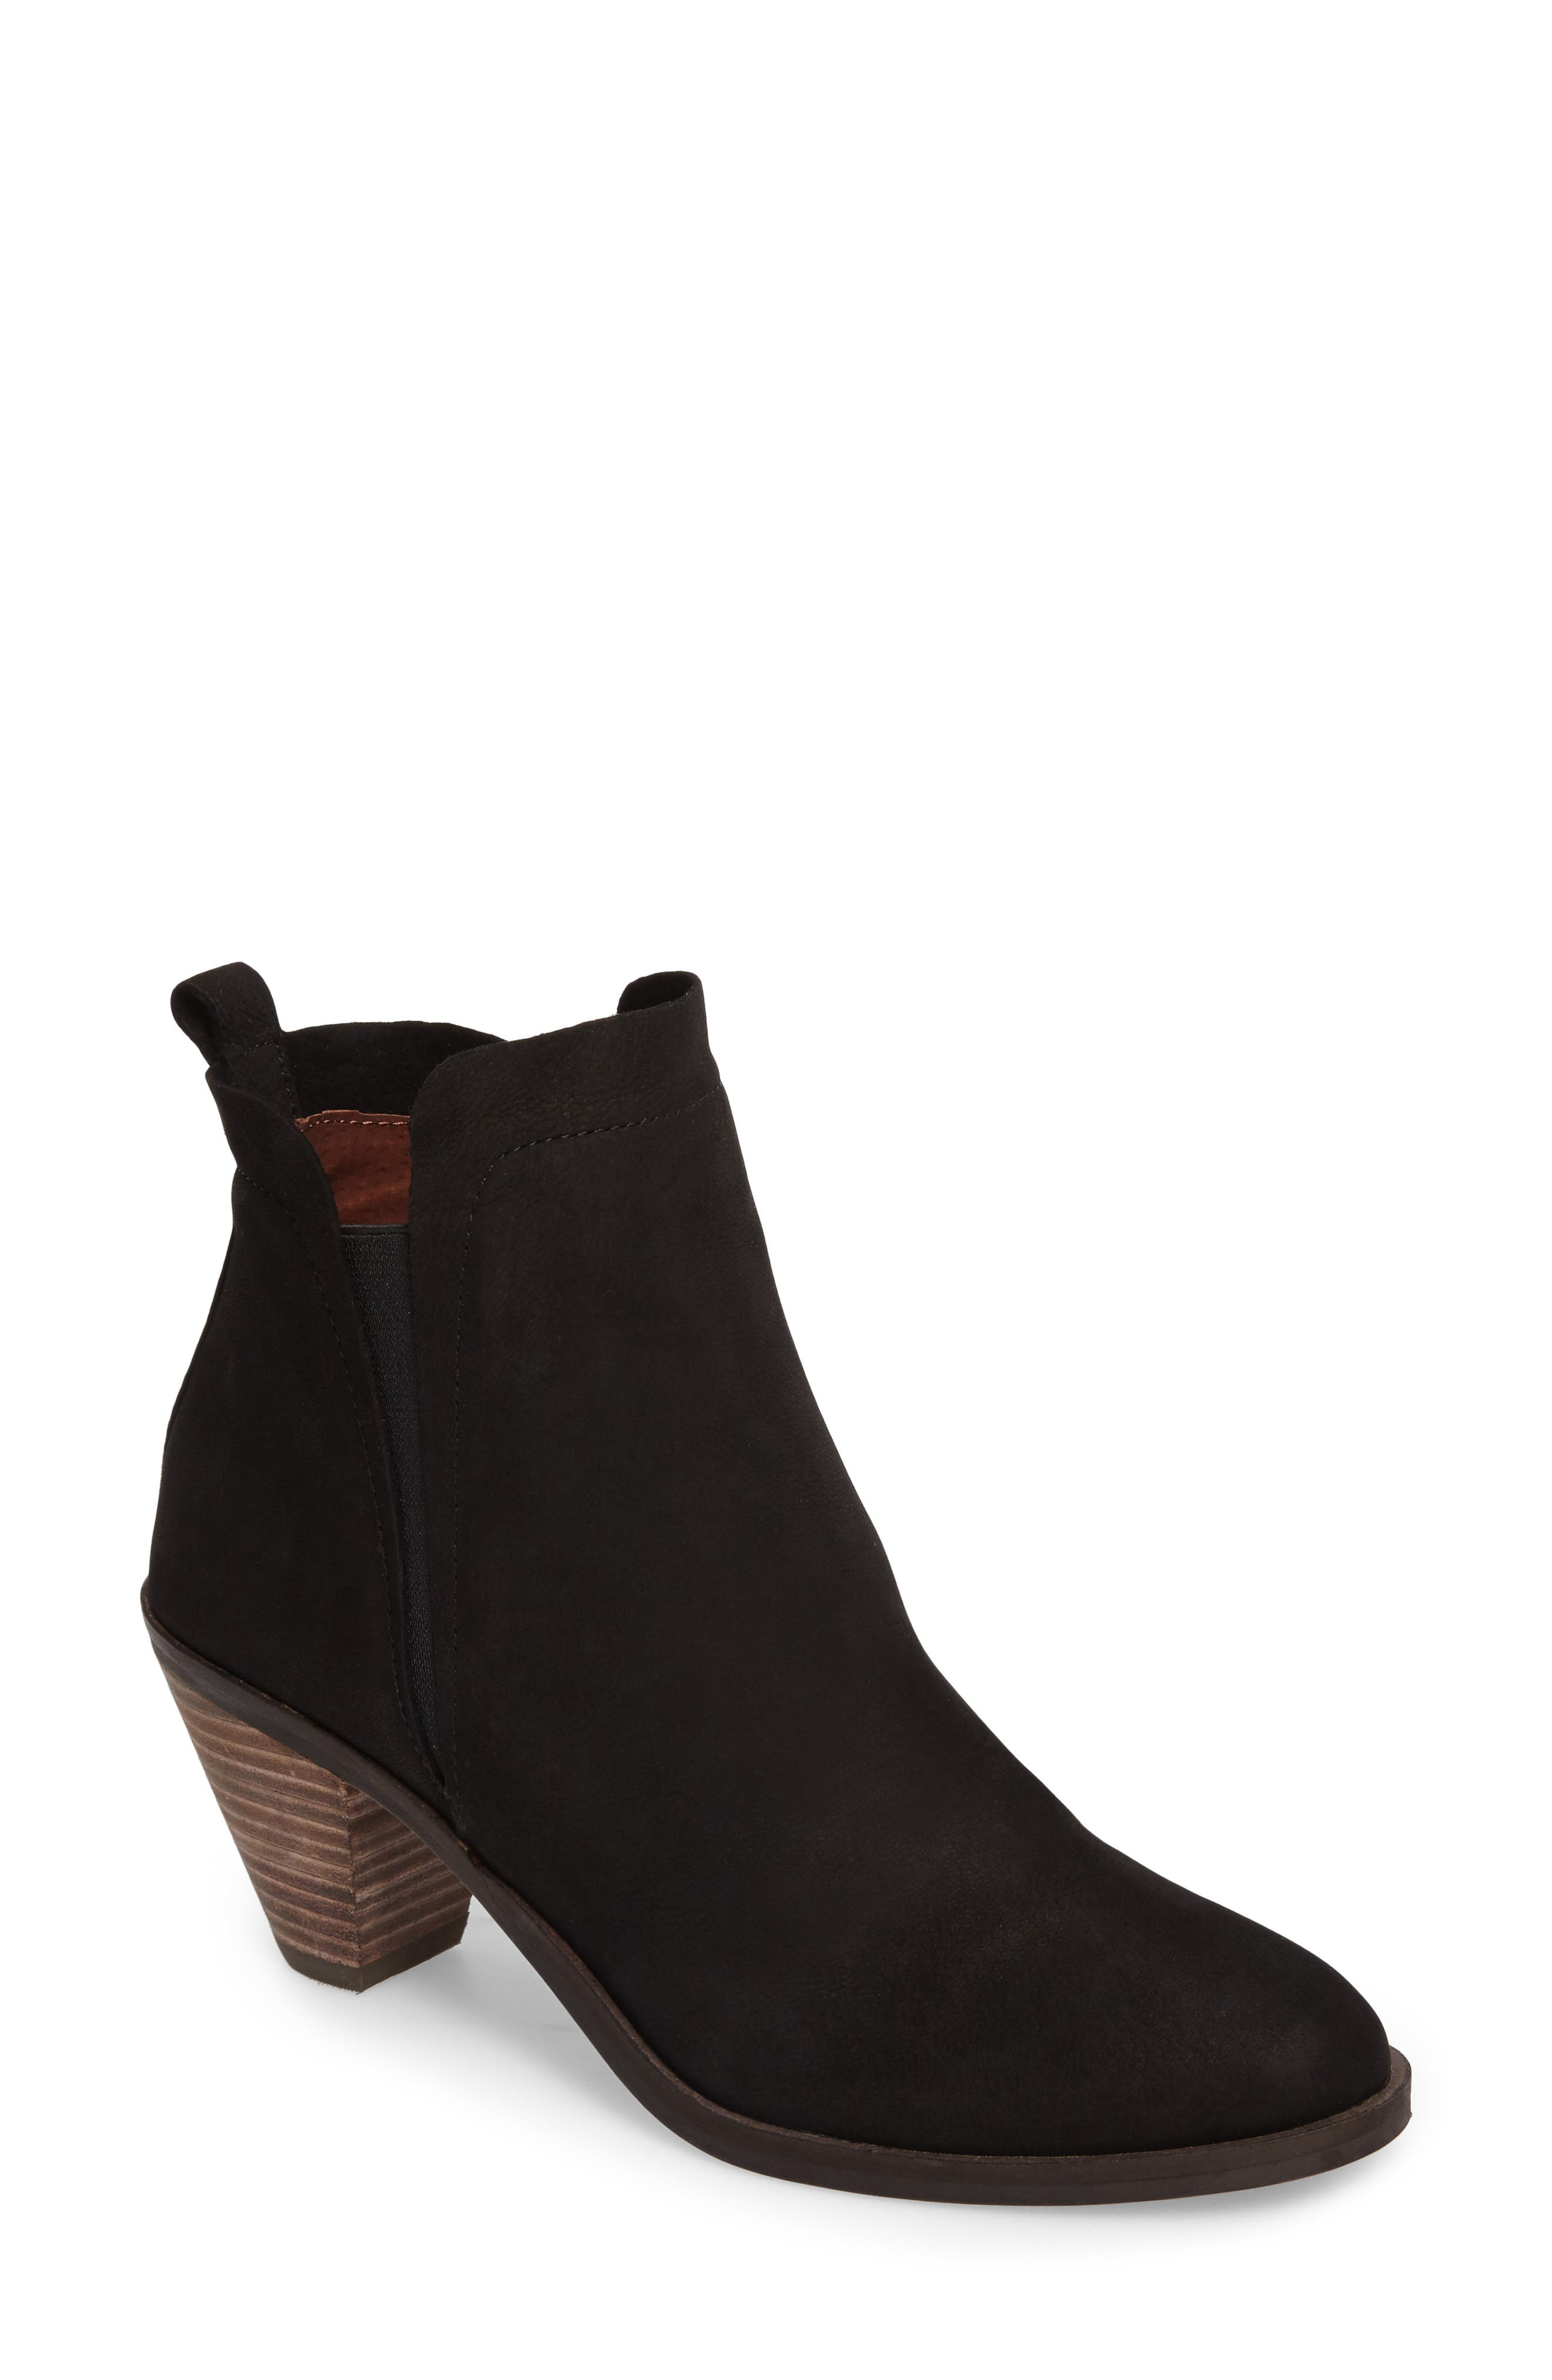 Jana Bootie,                         Main,                         color, 001